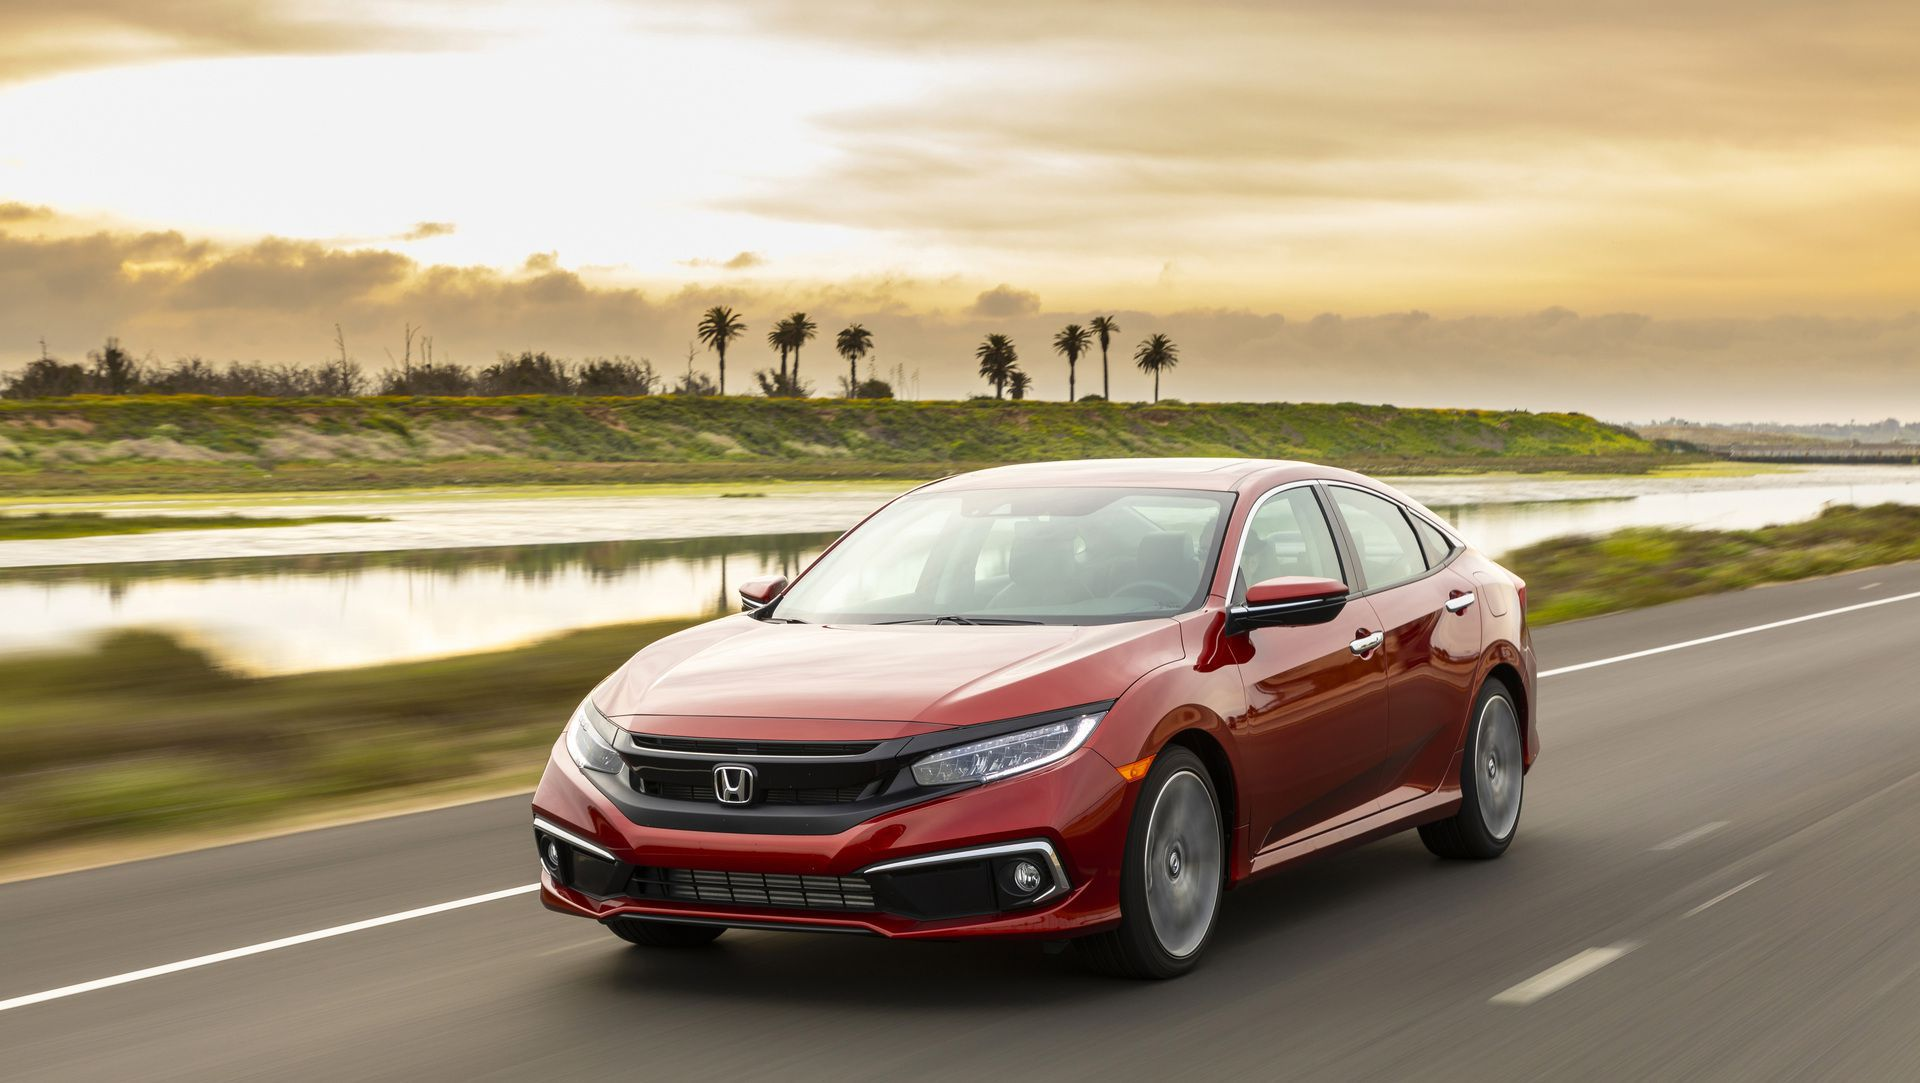 2021 honda civic review | price, specs, features and